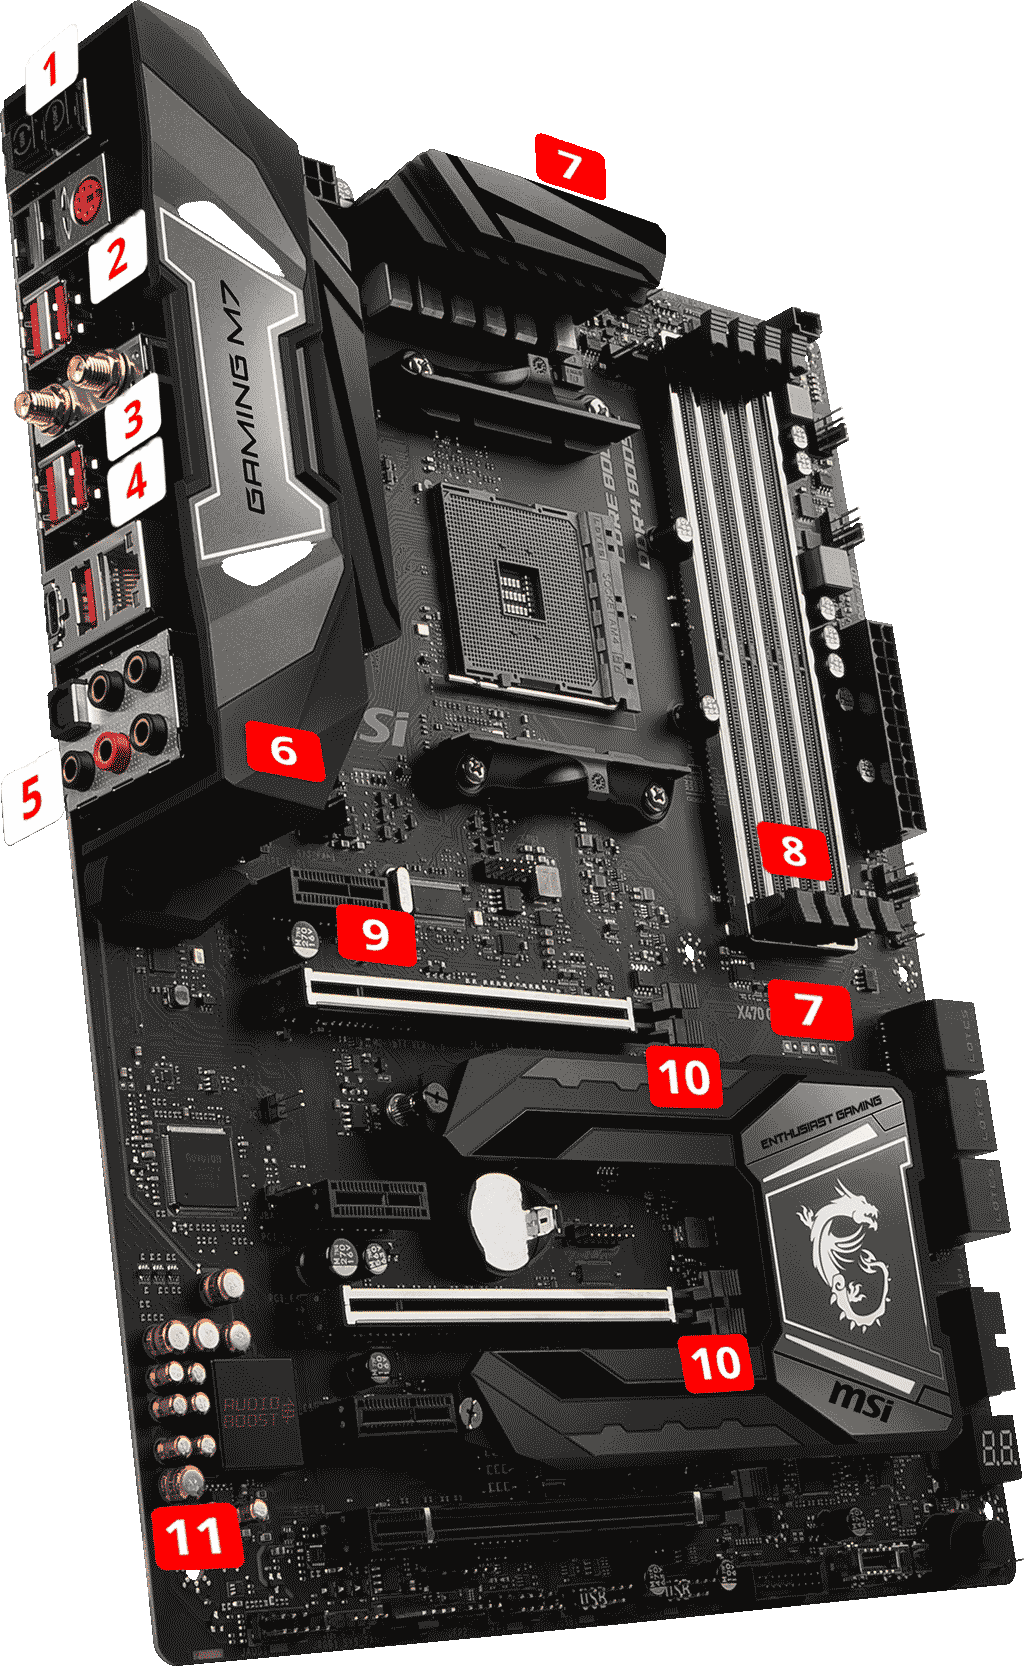 how to clear cmos msi 970 gaming motherboard